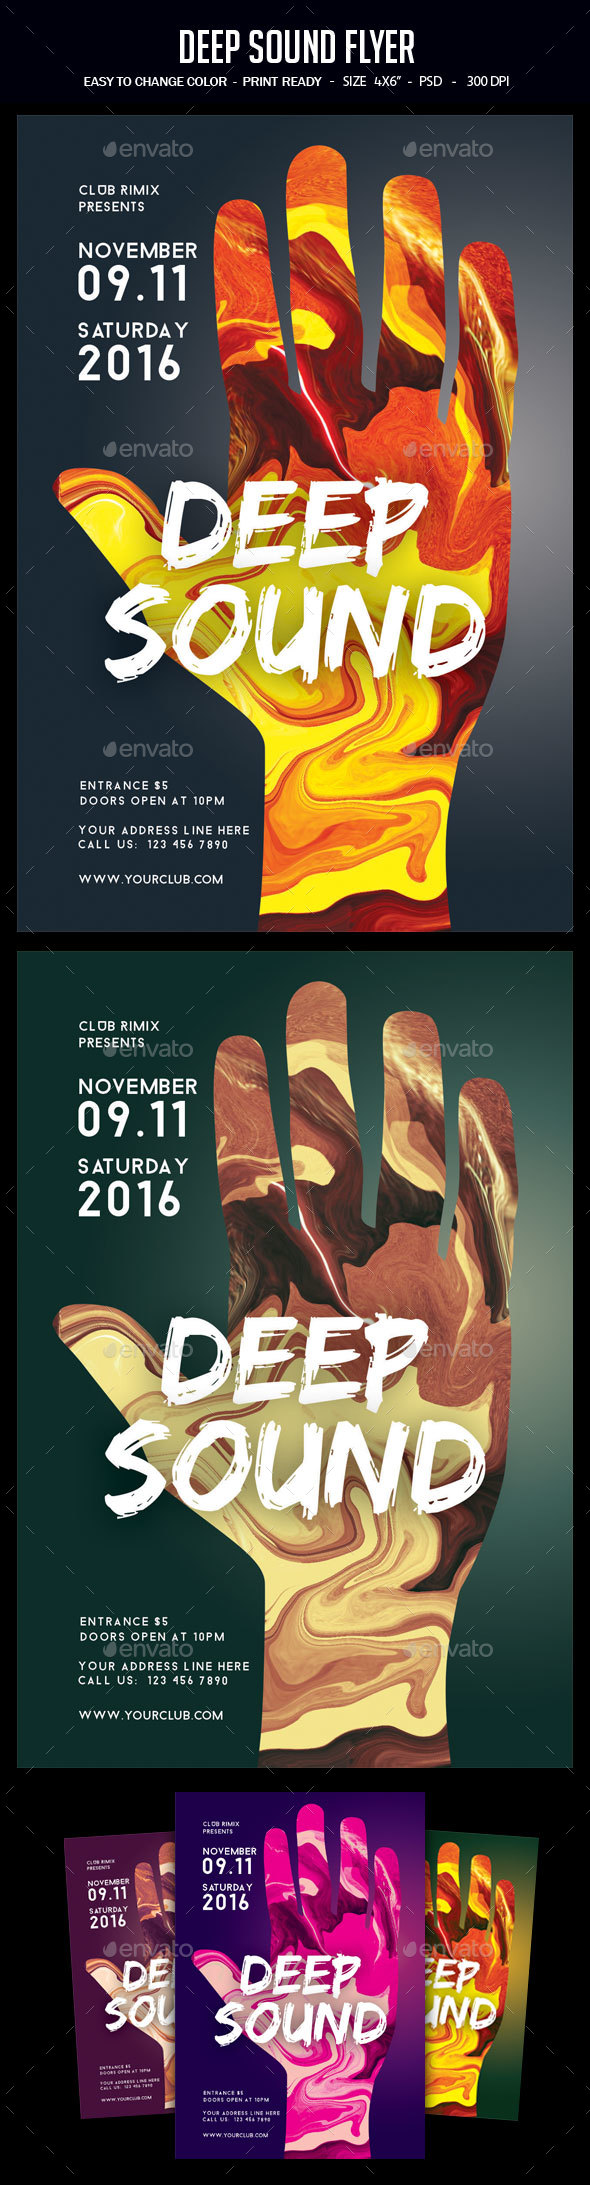 Deep Sound Flyer - Clubs & Parties Events